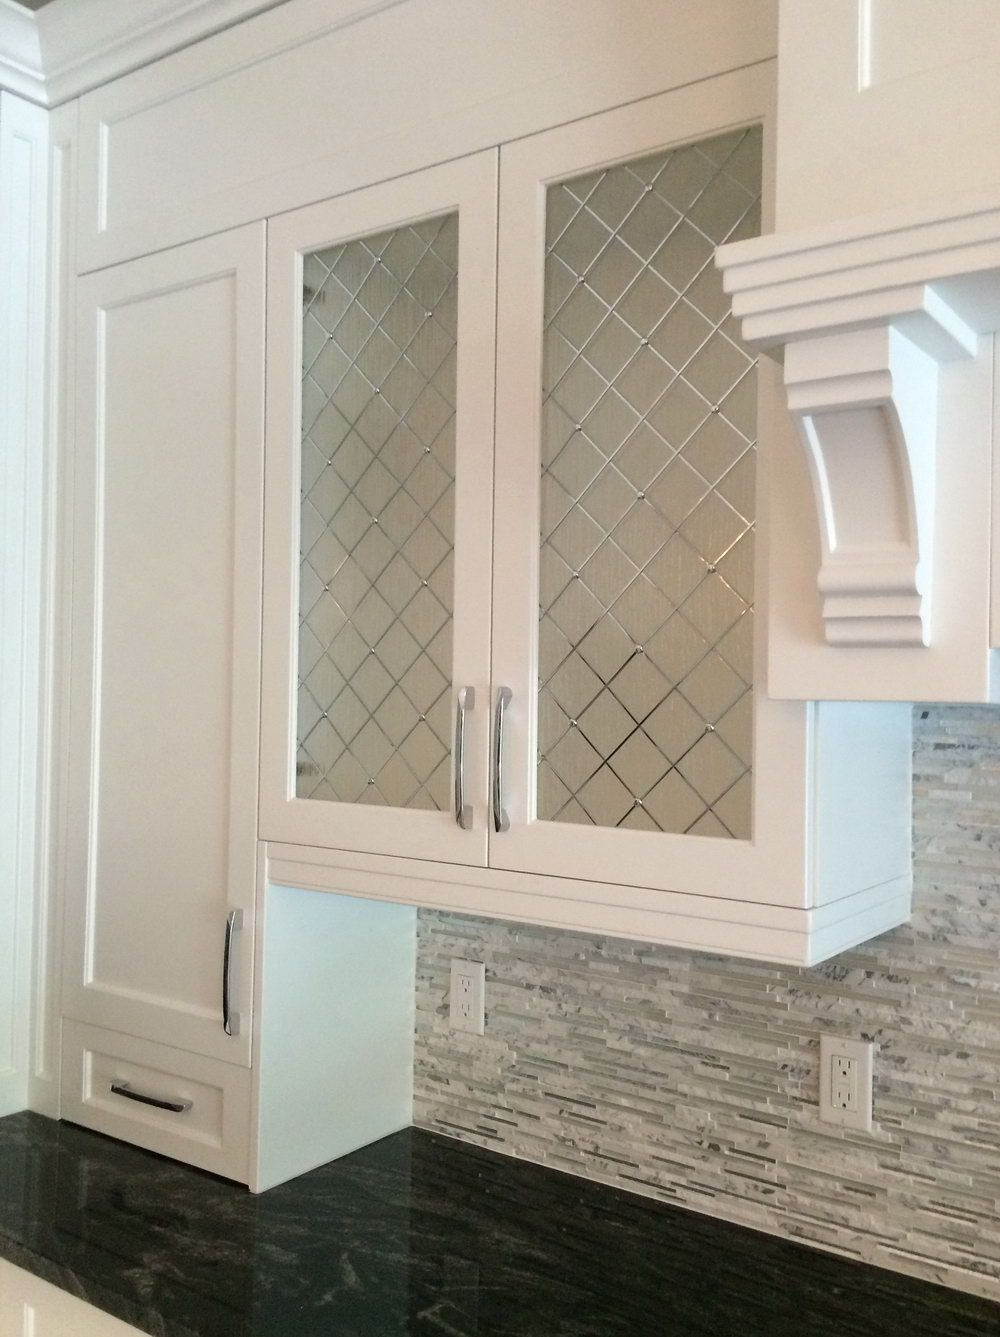 Captivating Frosted Glass Kitchen Cabinet Doors #kitchencabinetsorganization